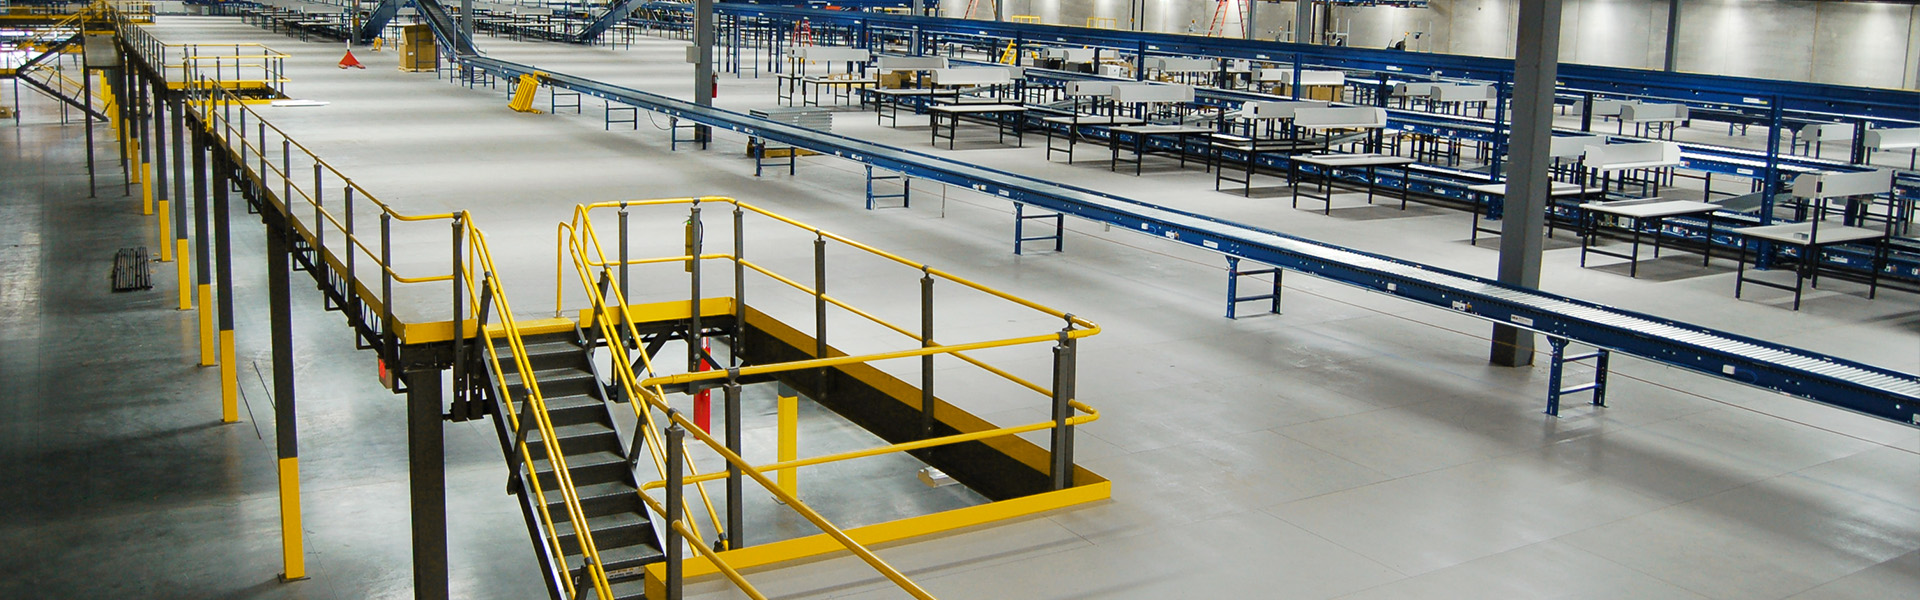 Large distribution center mezzanine with conveyor